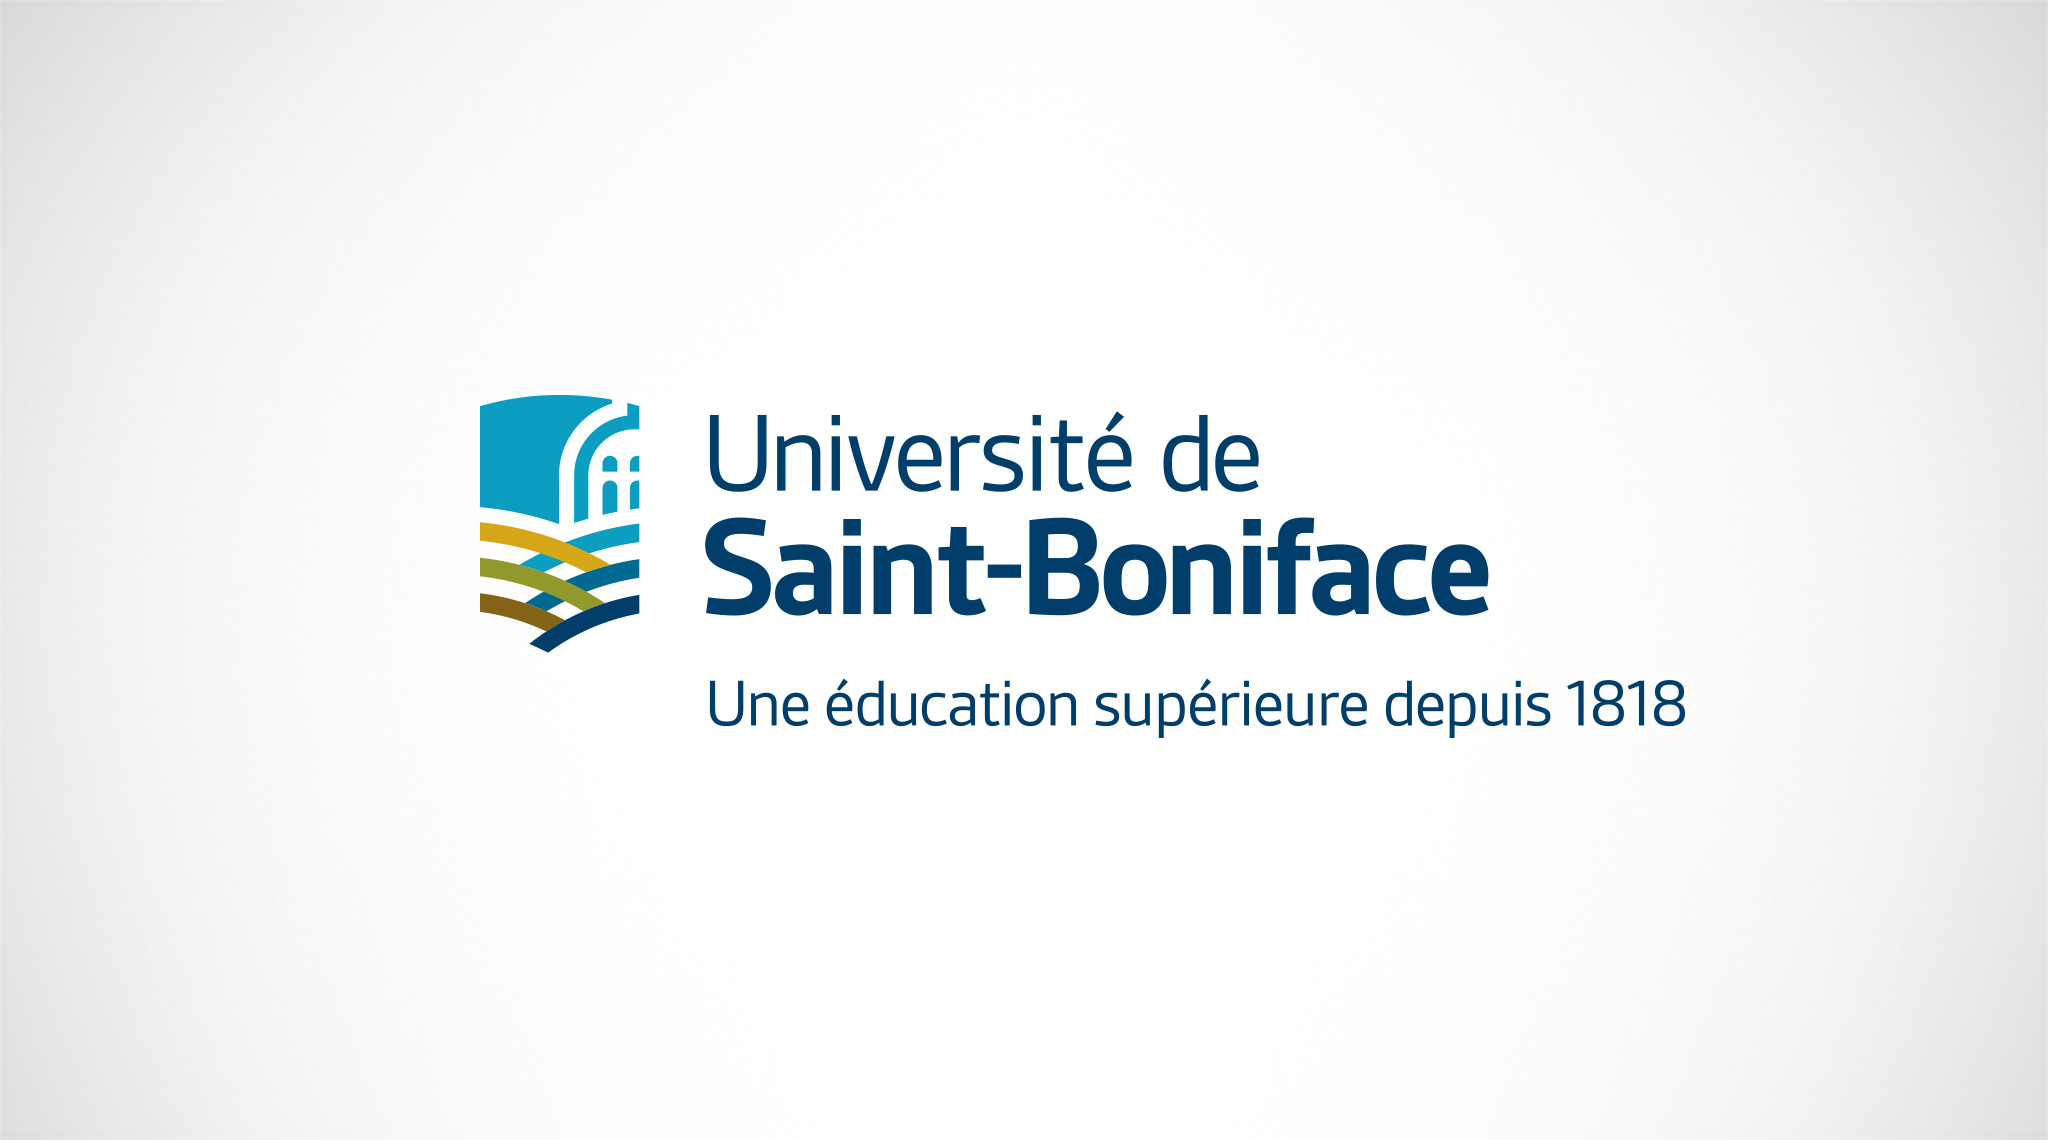 Université de Saint-Boniface launches new identity